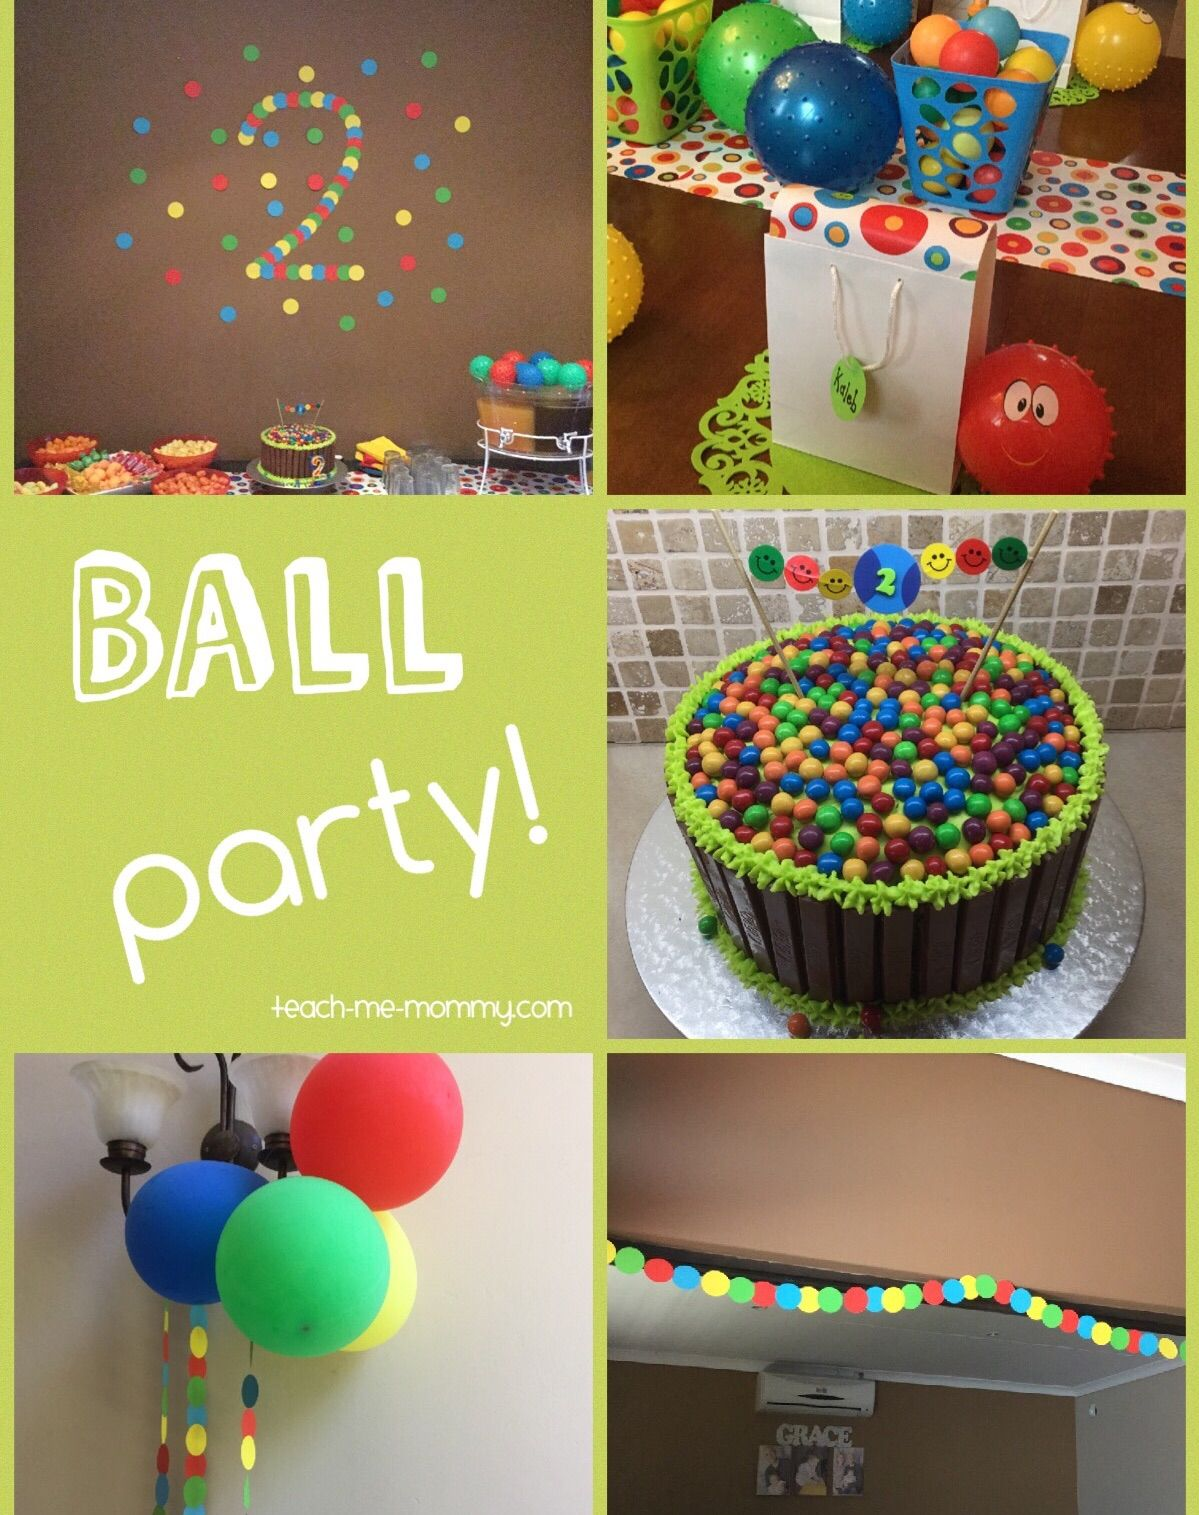 Ball Themed Party for a 2 Year Old Themed parties Birthdays and